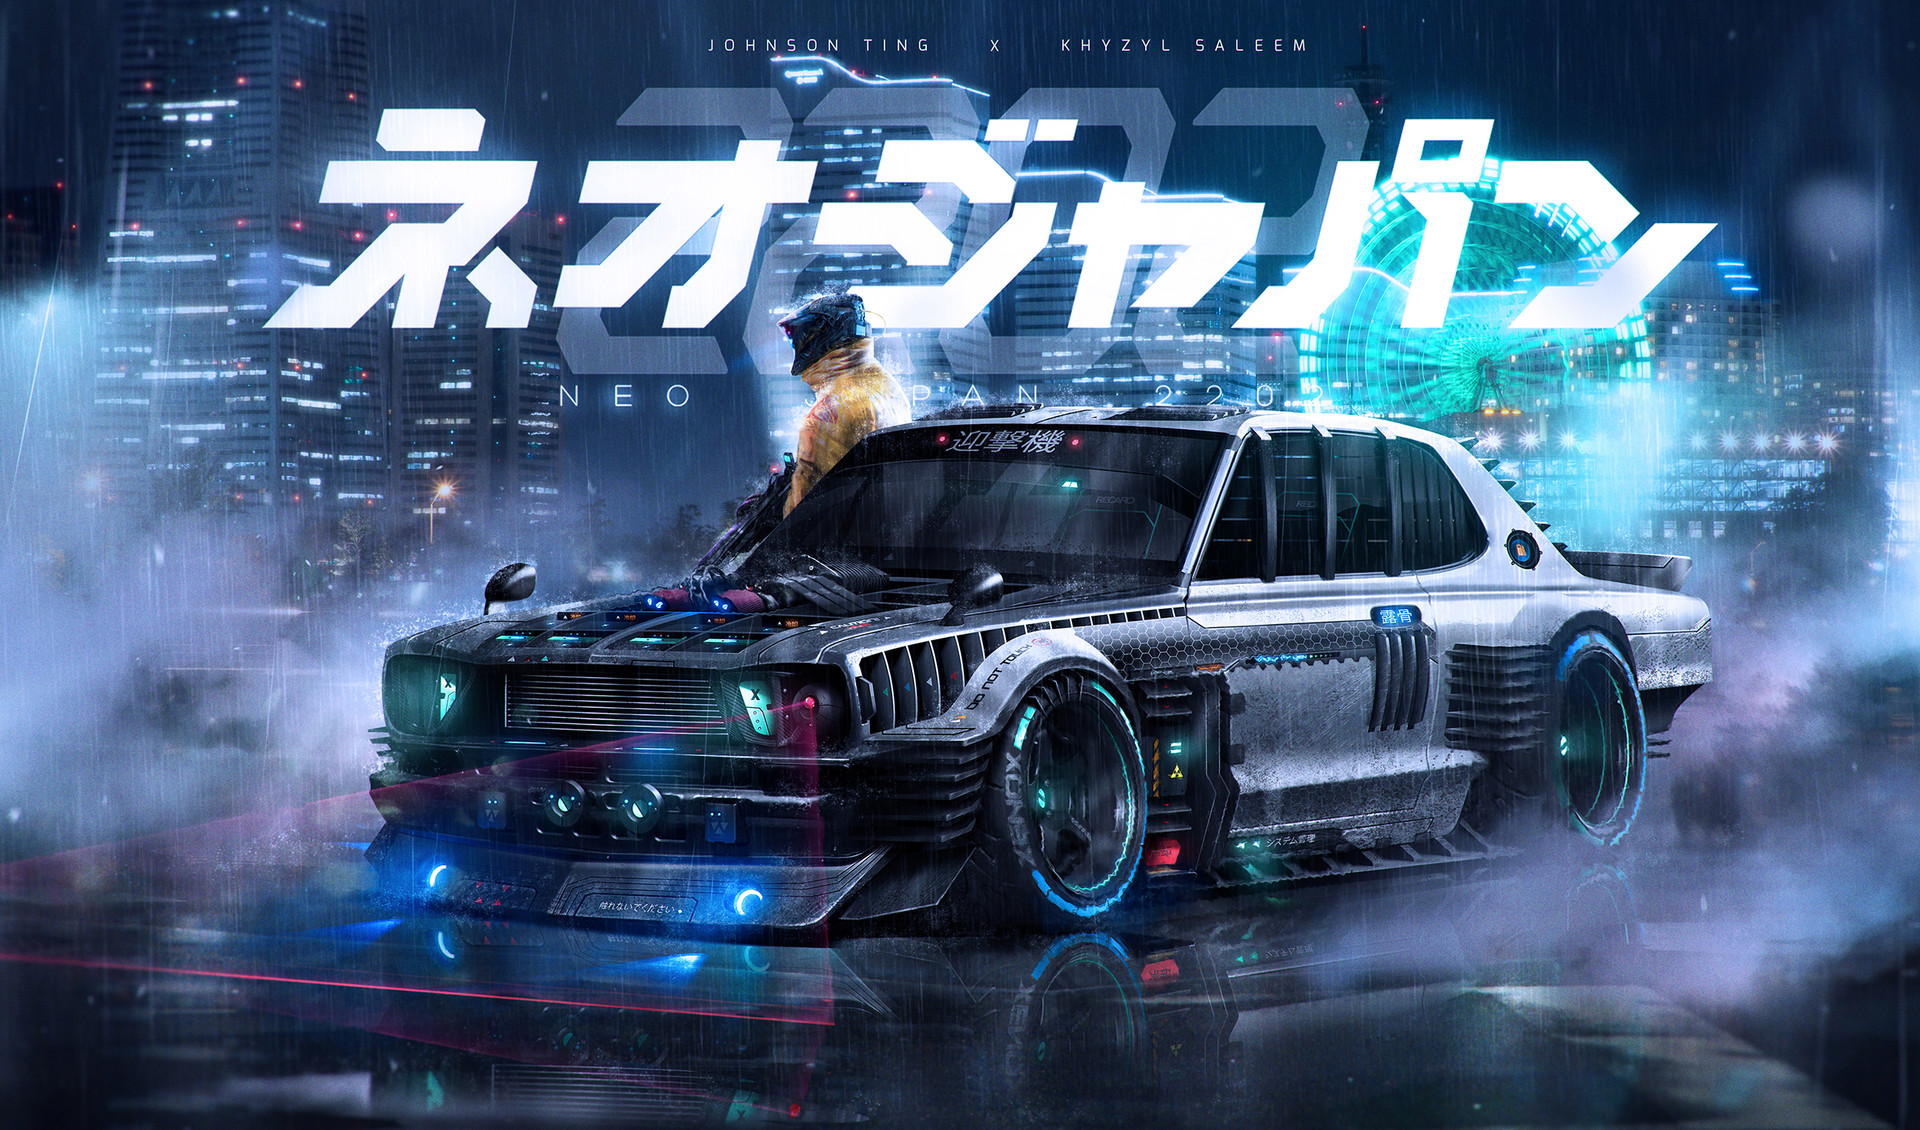 Neo Japan 2202 X Khyzyl Saleem - Interceptor